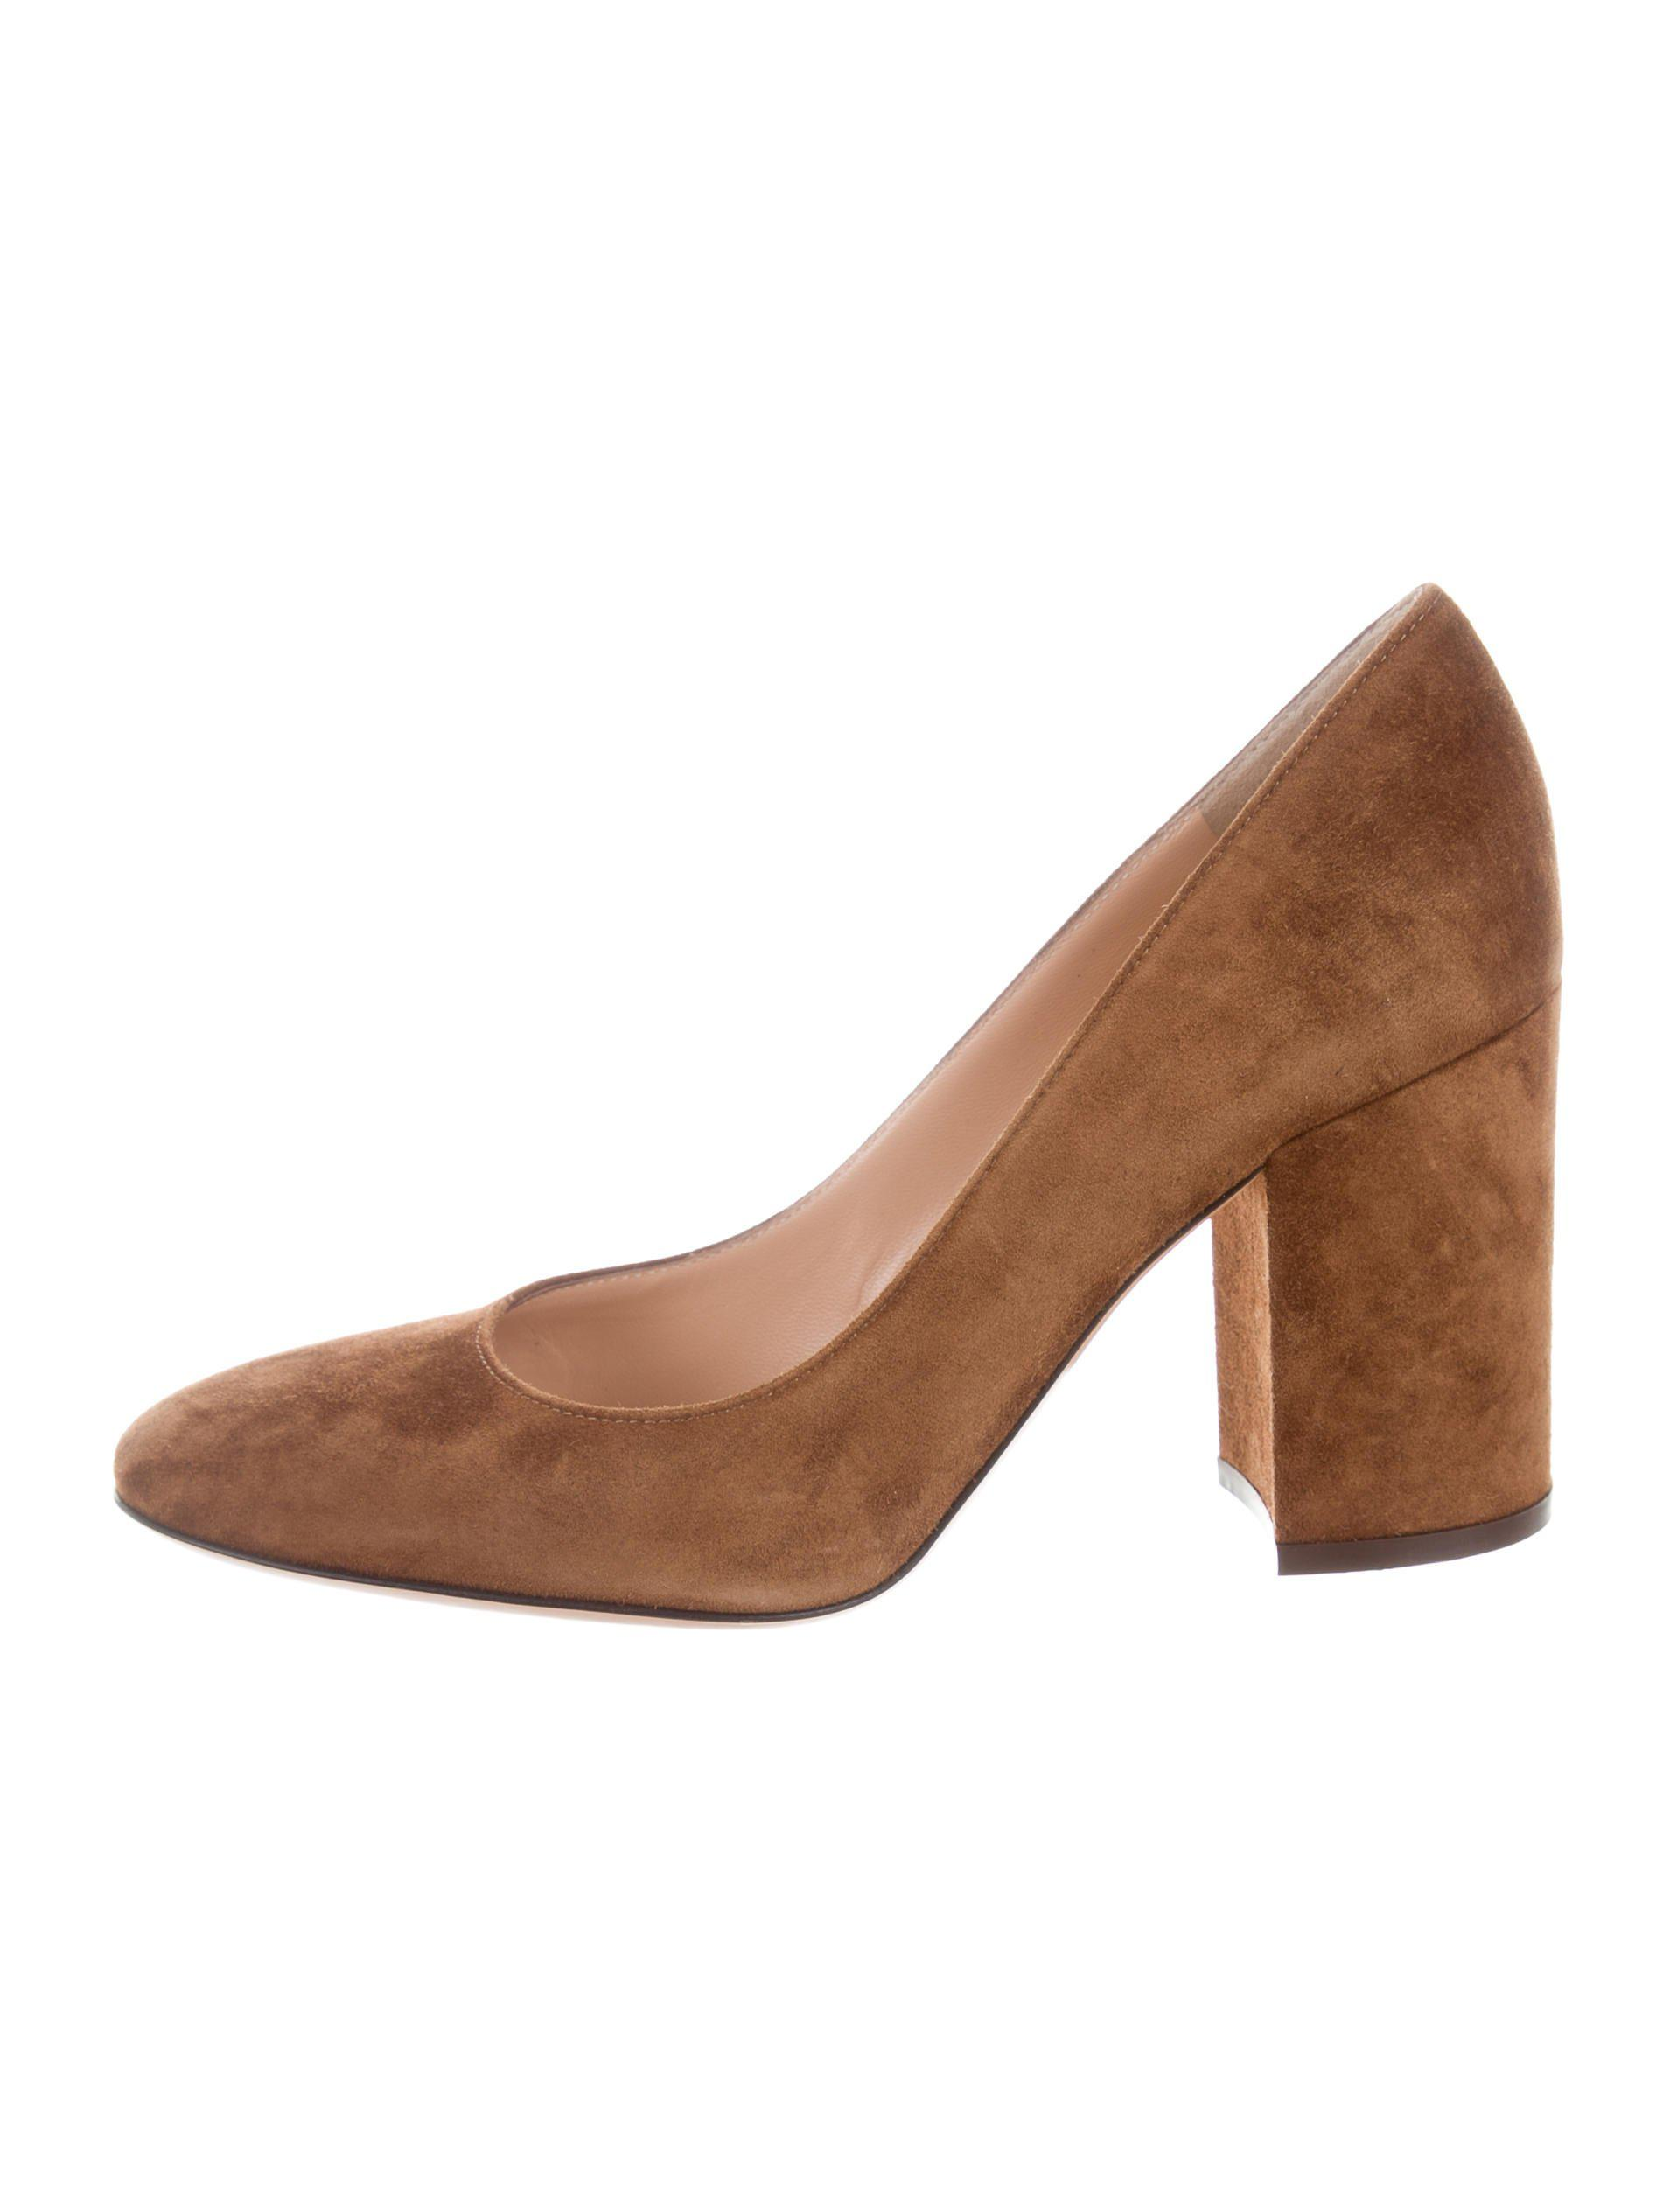 Gianvito Rossi Round-Toe Suede Pumps w/ Tags discount clearance store get to buy sale online clearance outlet locations with credit card online cheap top quality Z51k7vkqT